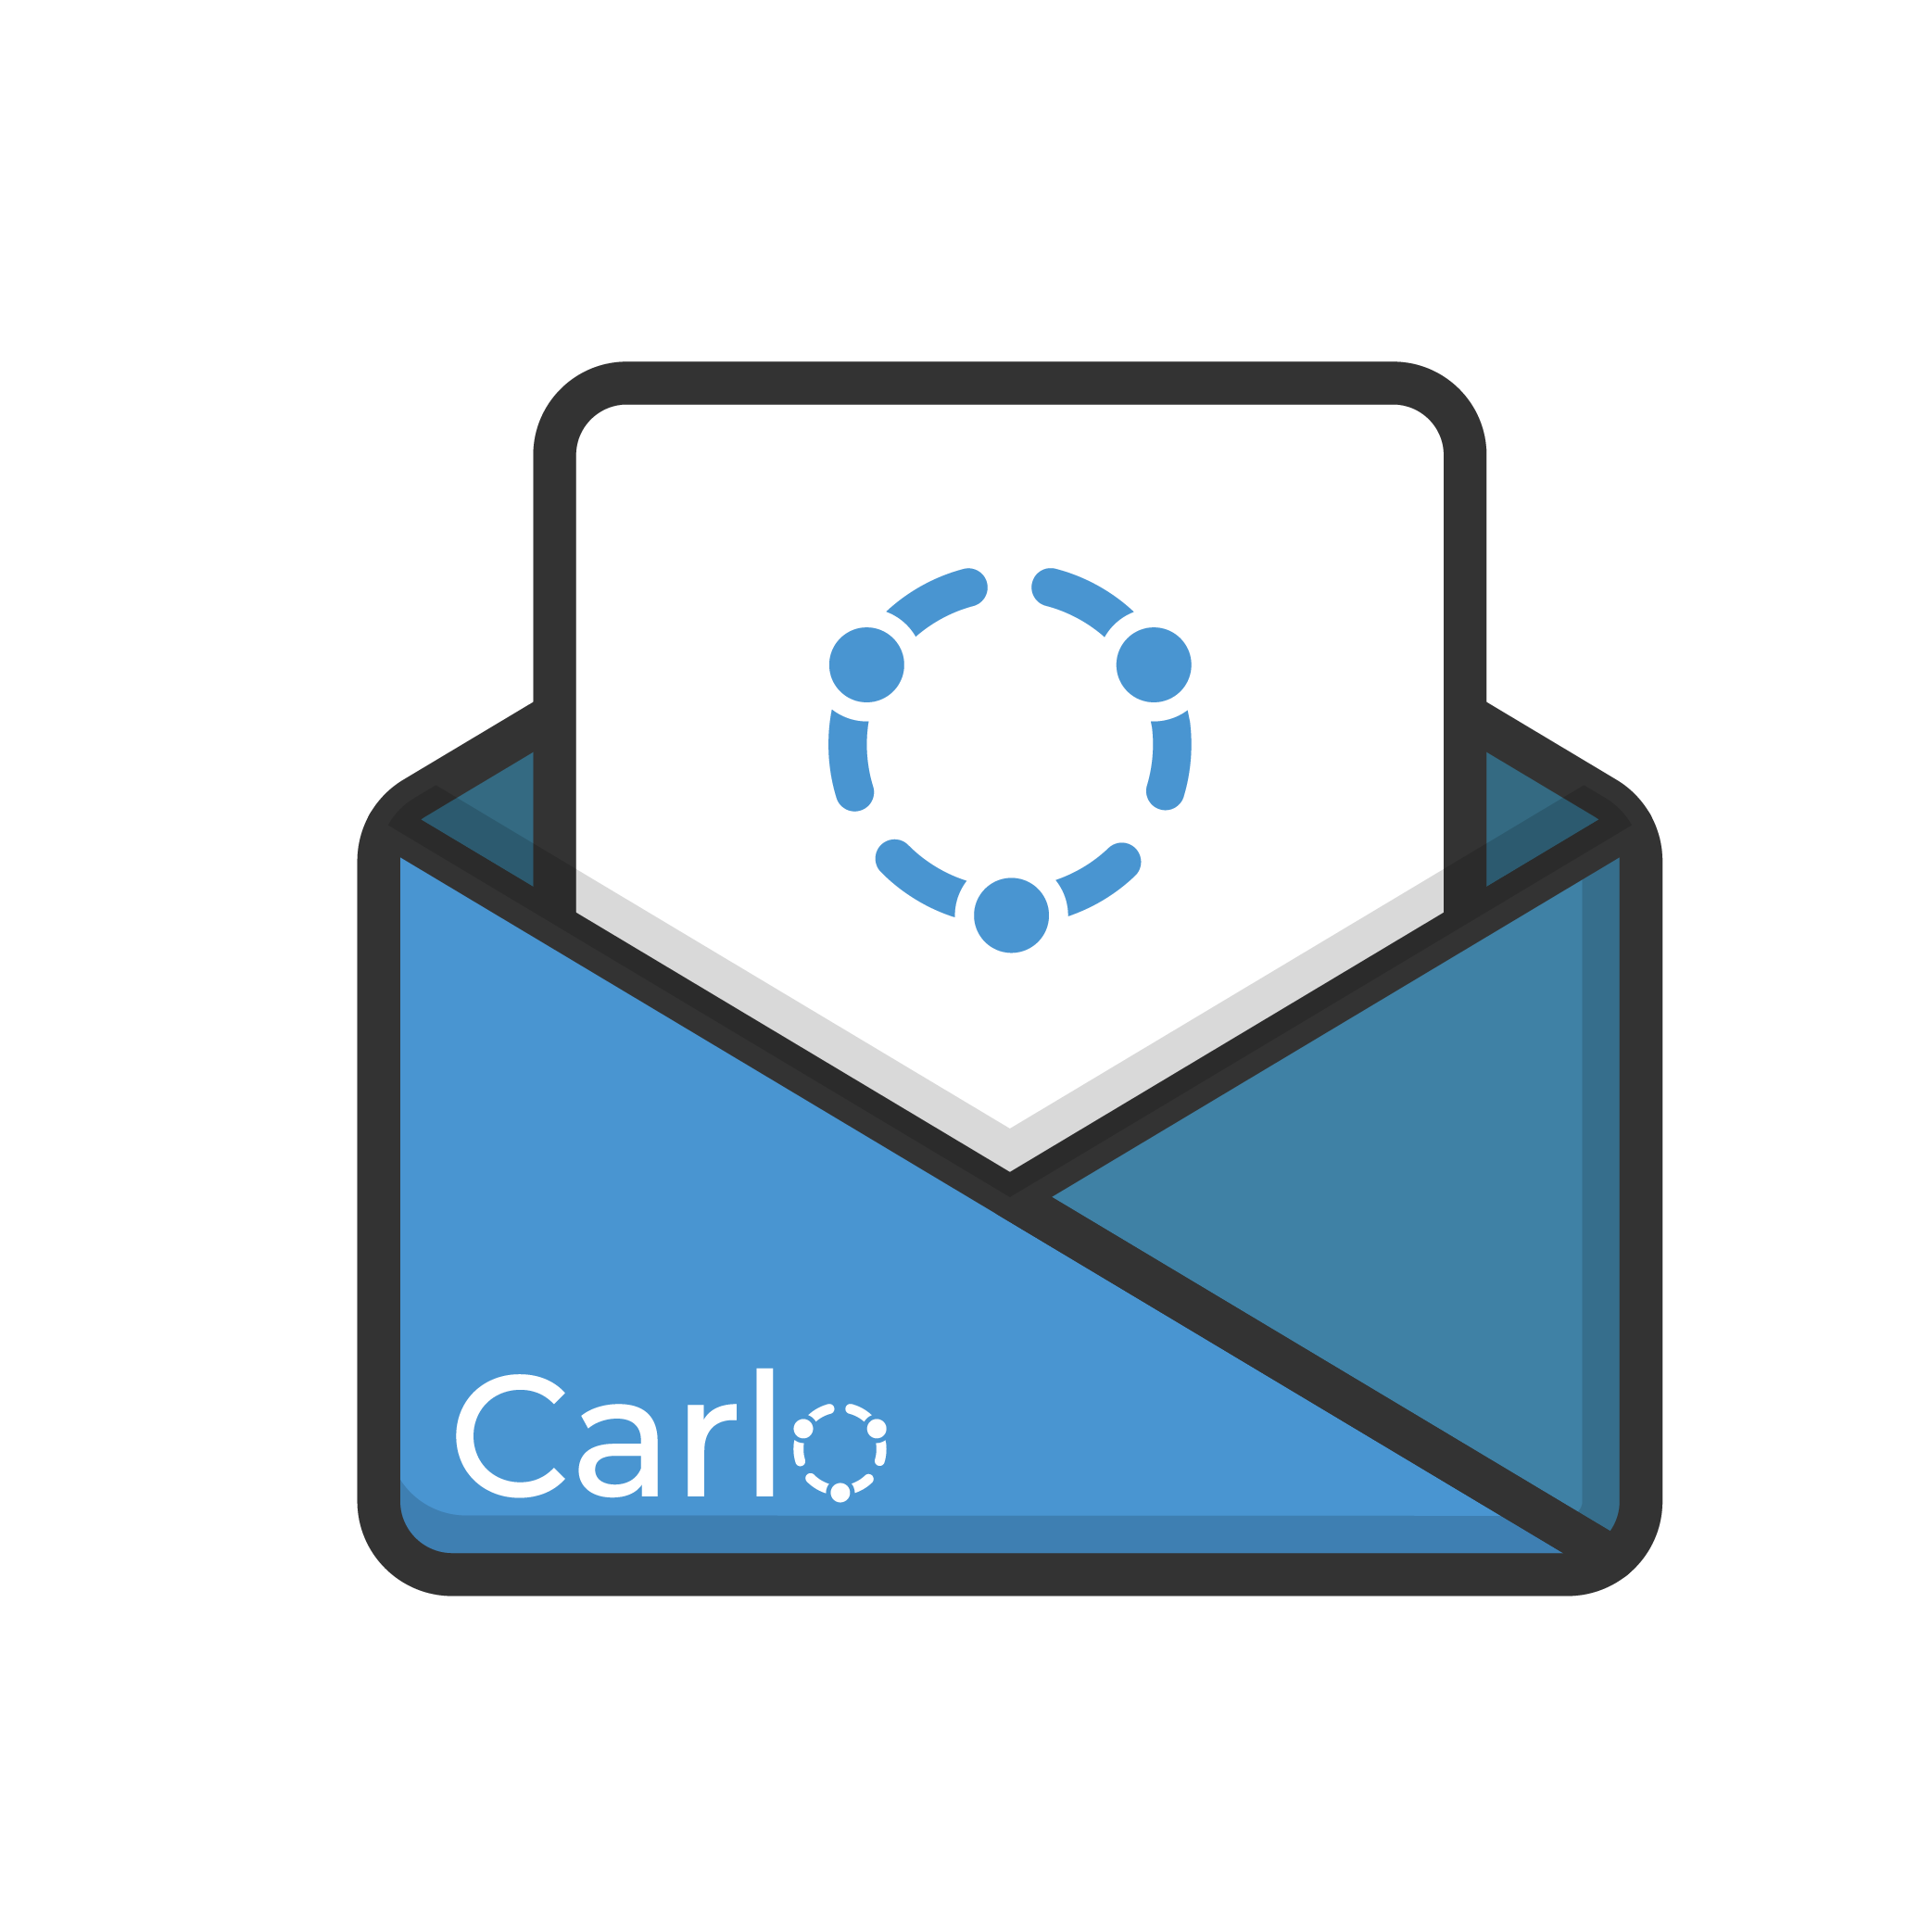 newsletter-letter-carlo-local